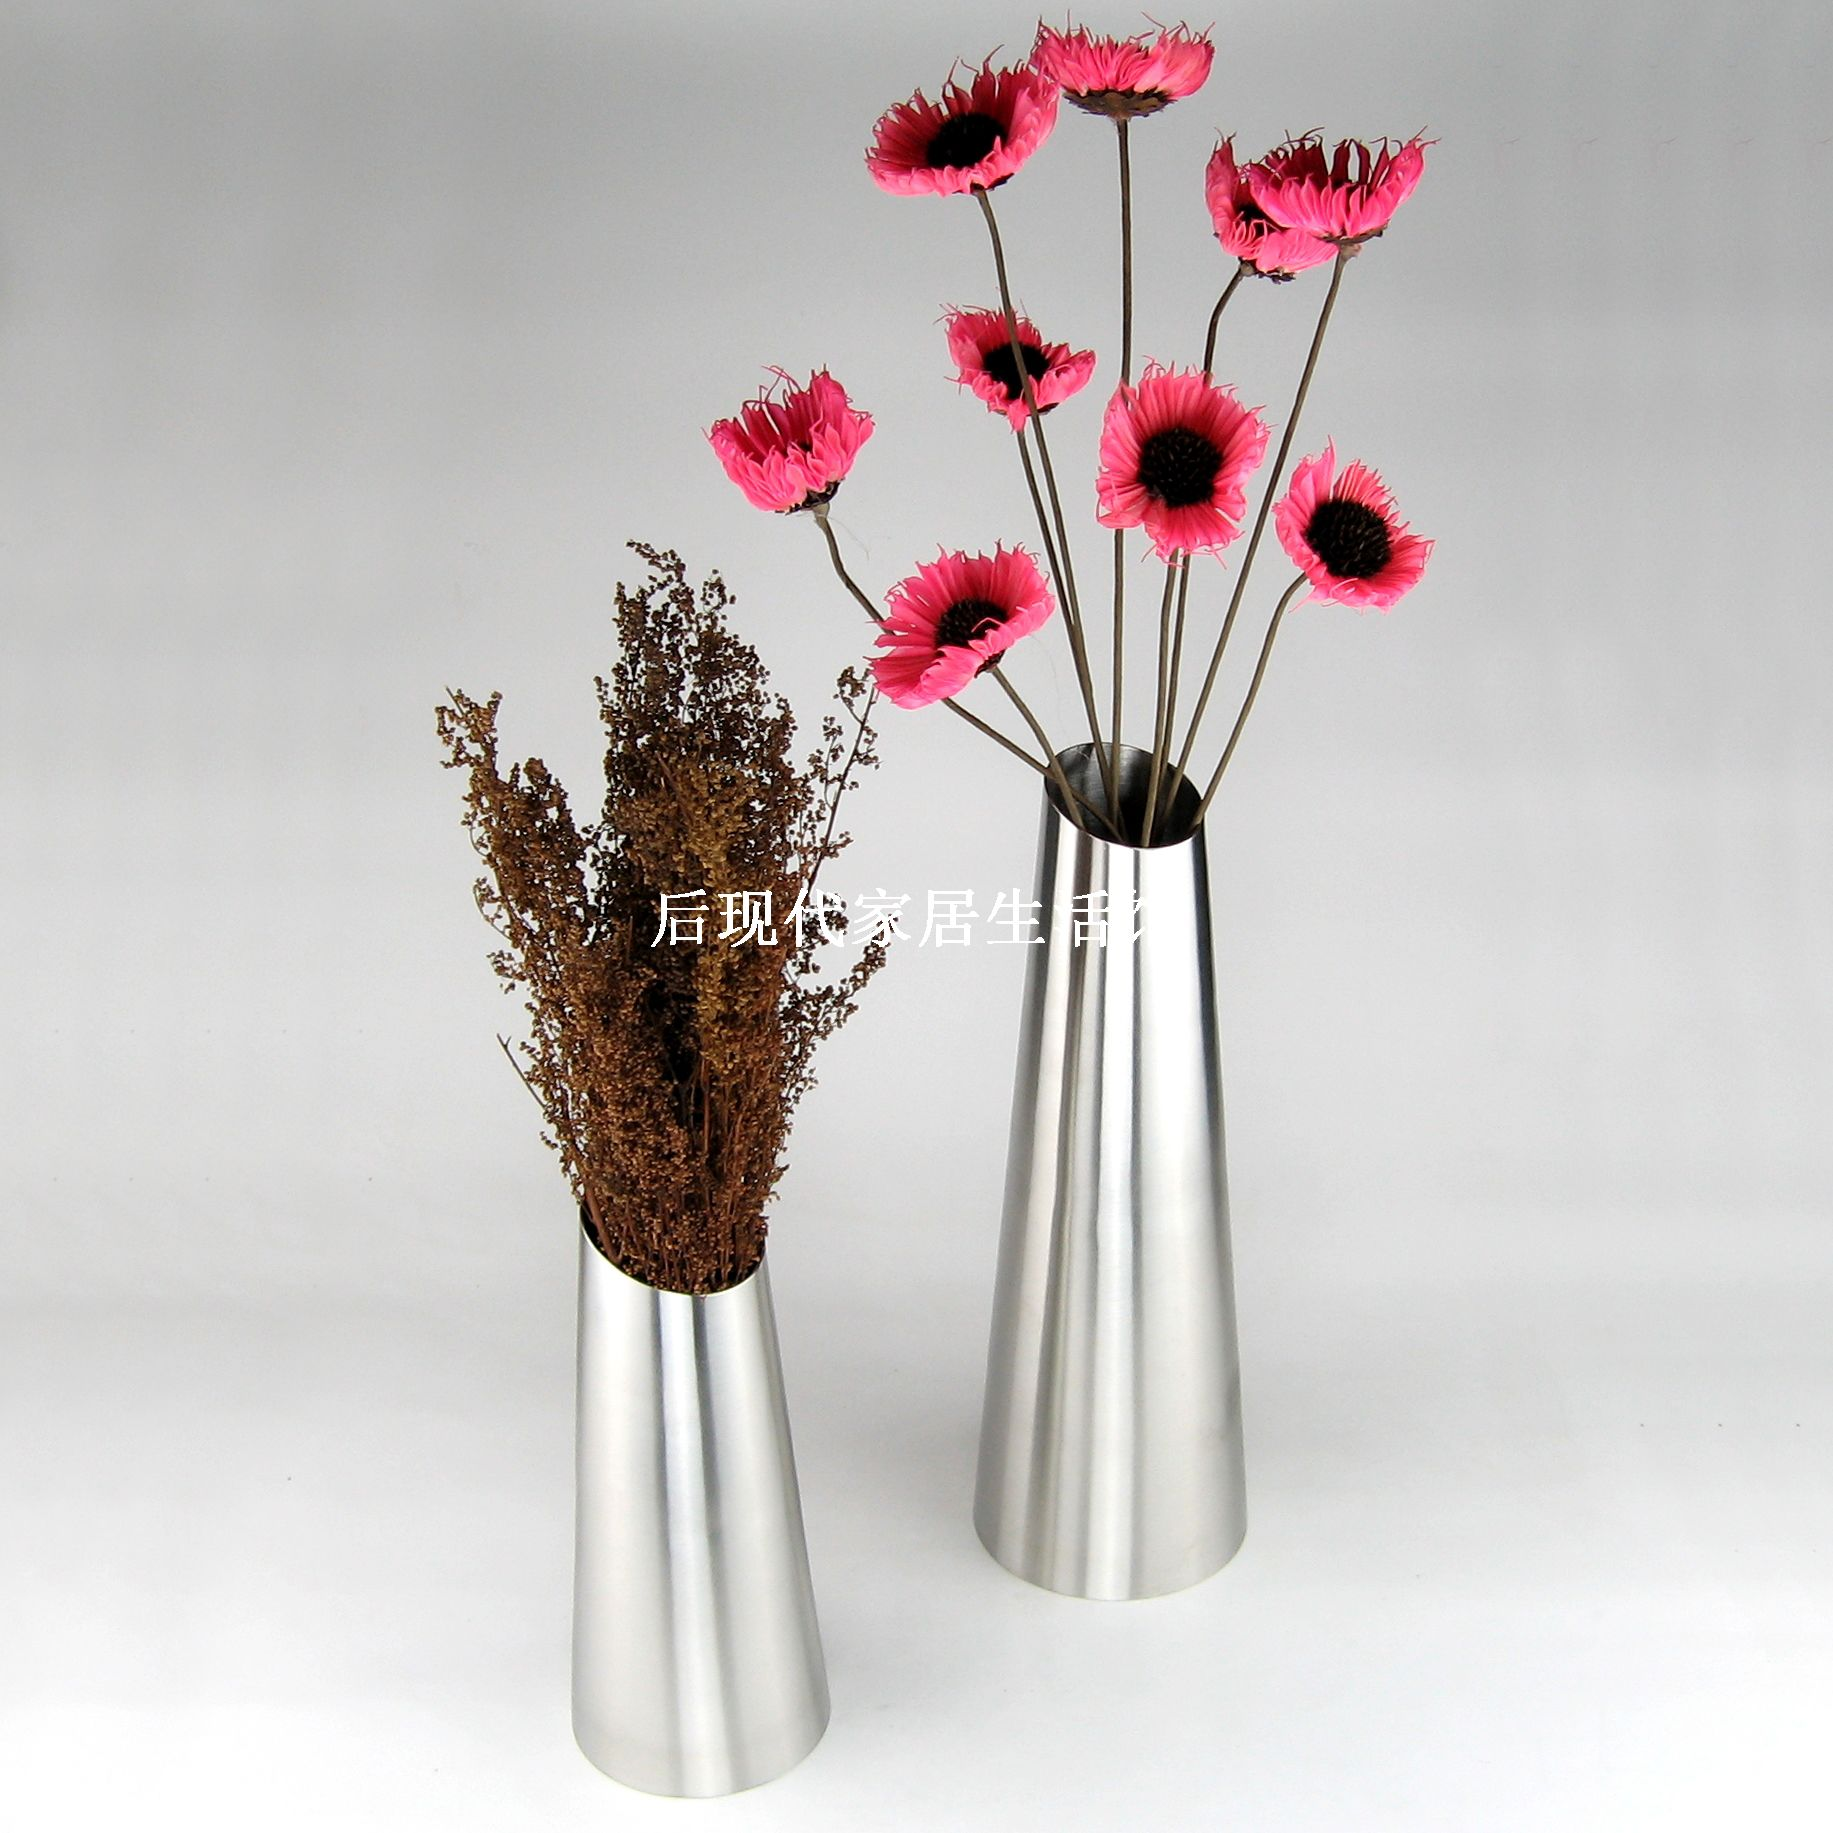 compare prices on stainless steel vases online shoppingbuy low  - free shipping exquisite stainless steel vase home decor flower pot optional sizes big and small